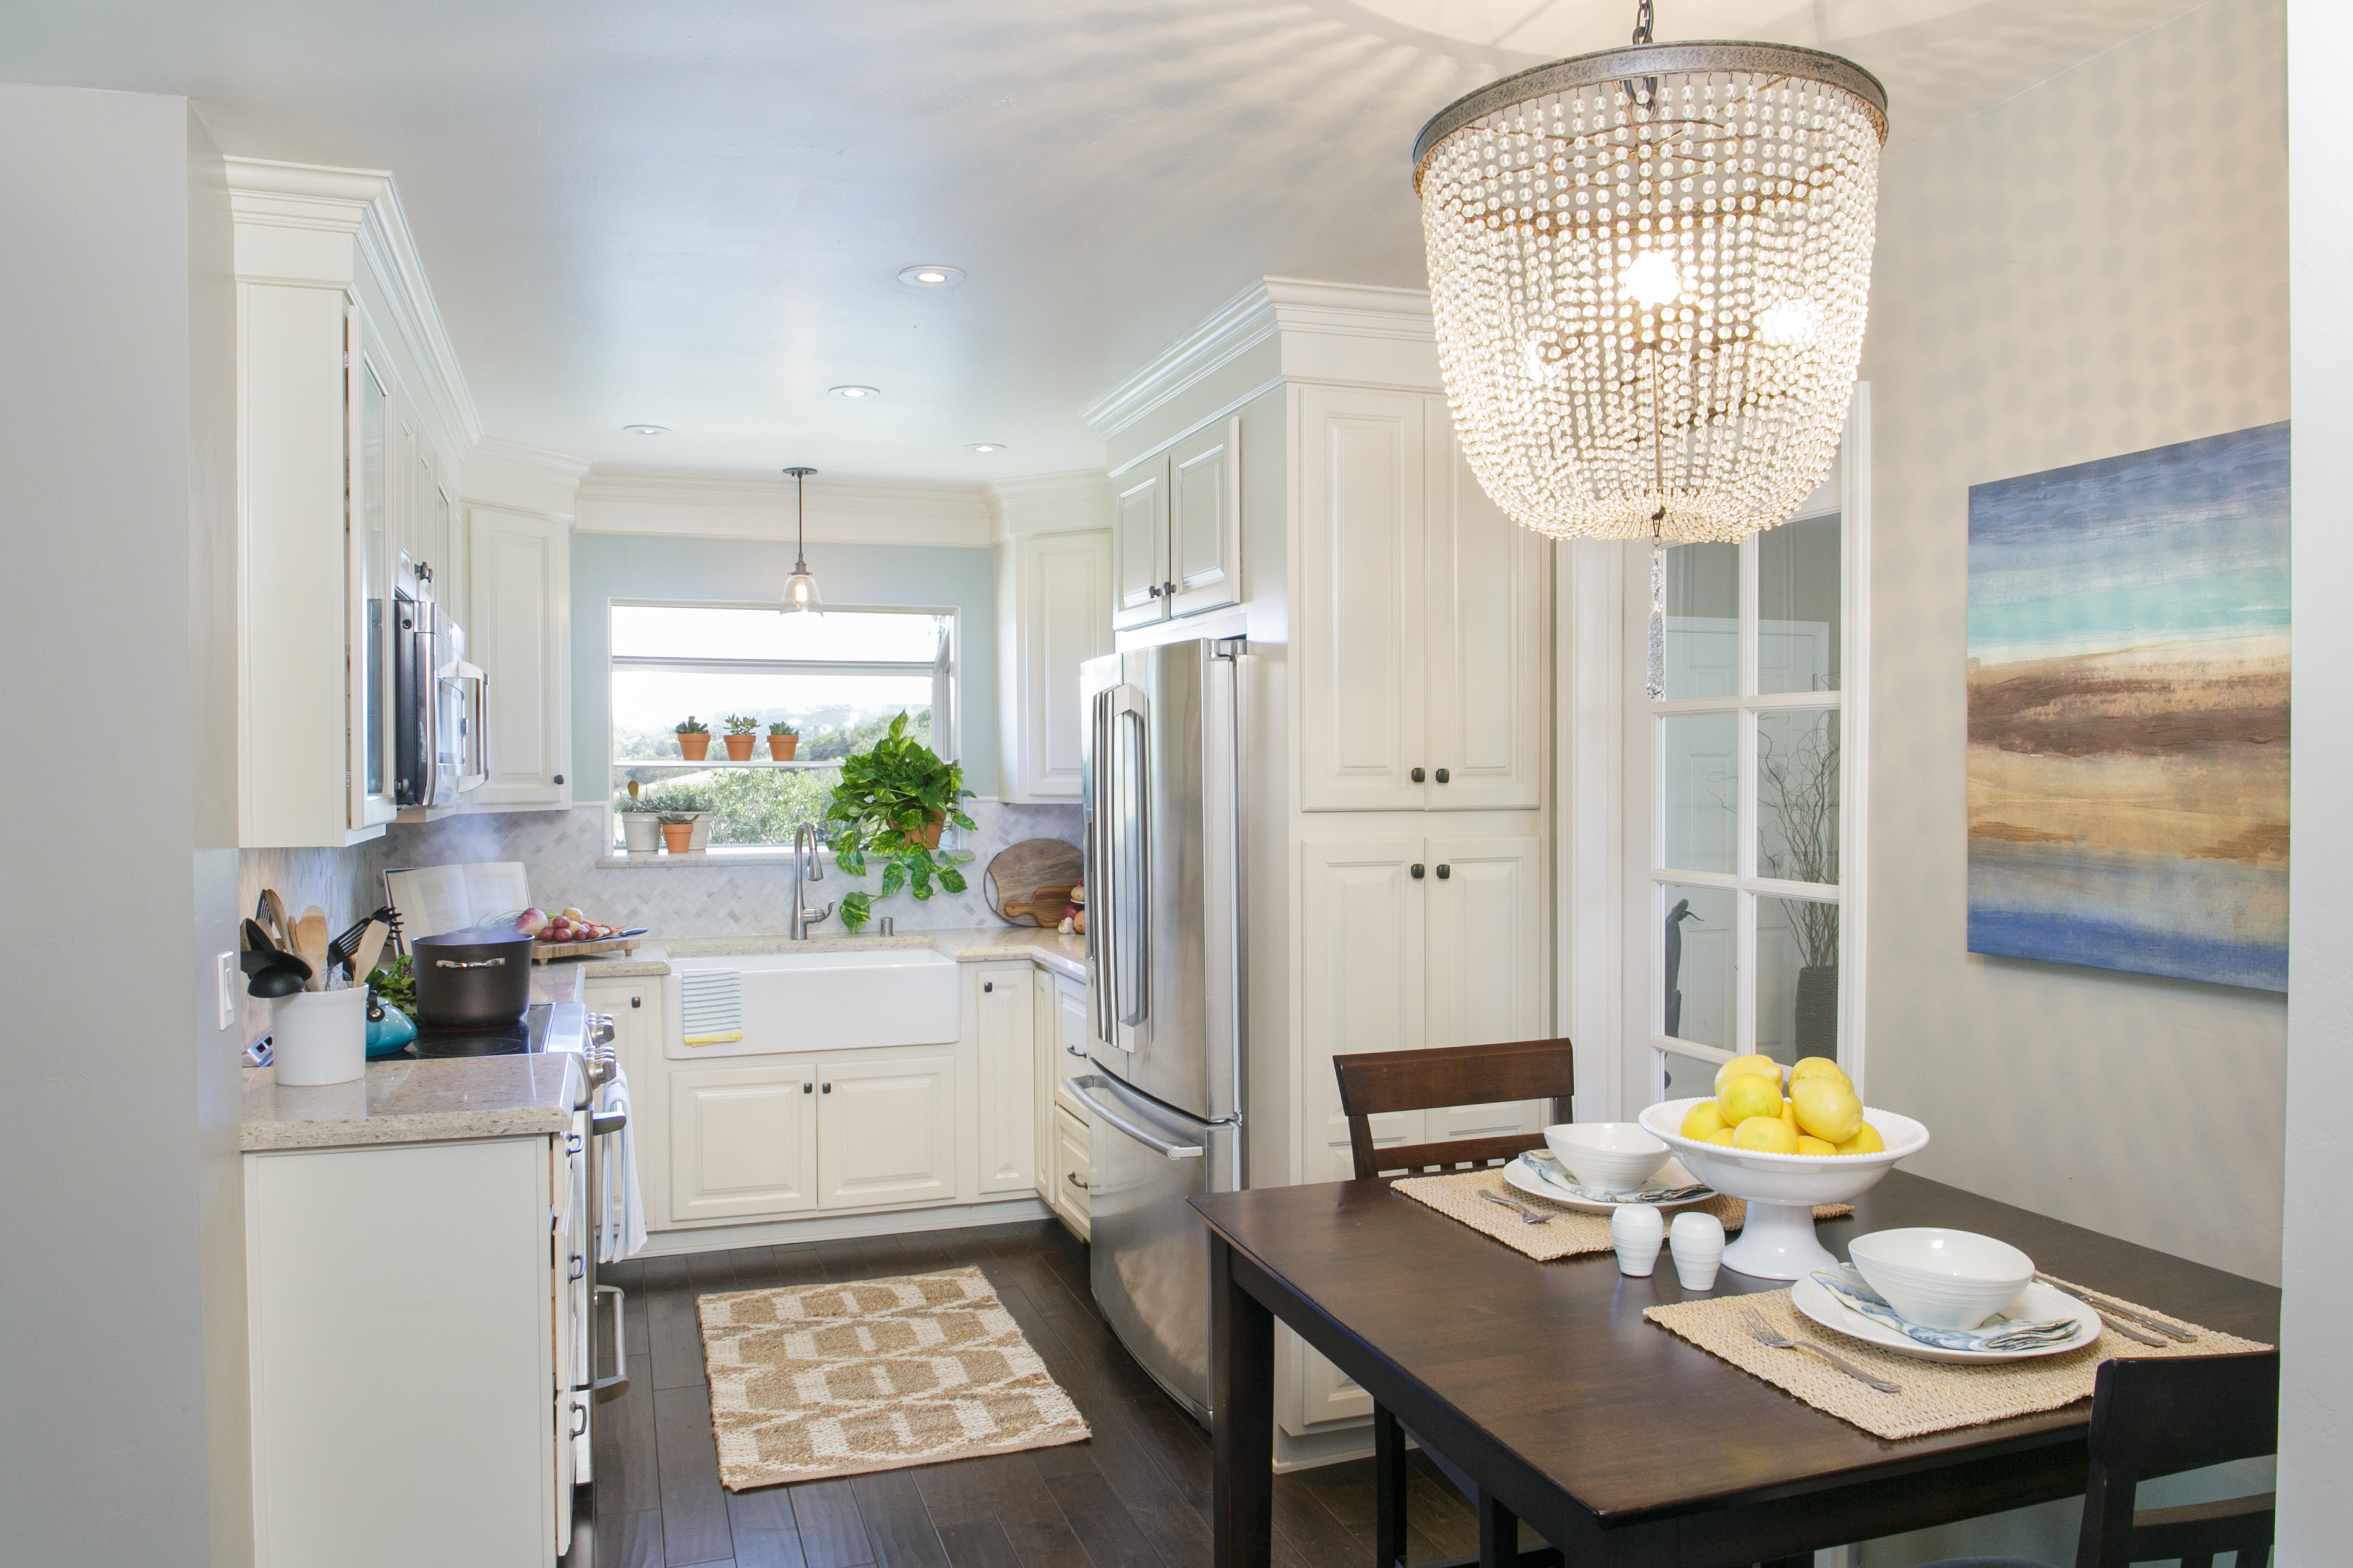 Danielle Perkins interior decorator before and after redesign kitchen San Diego 7